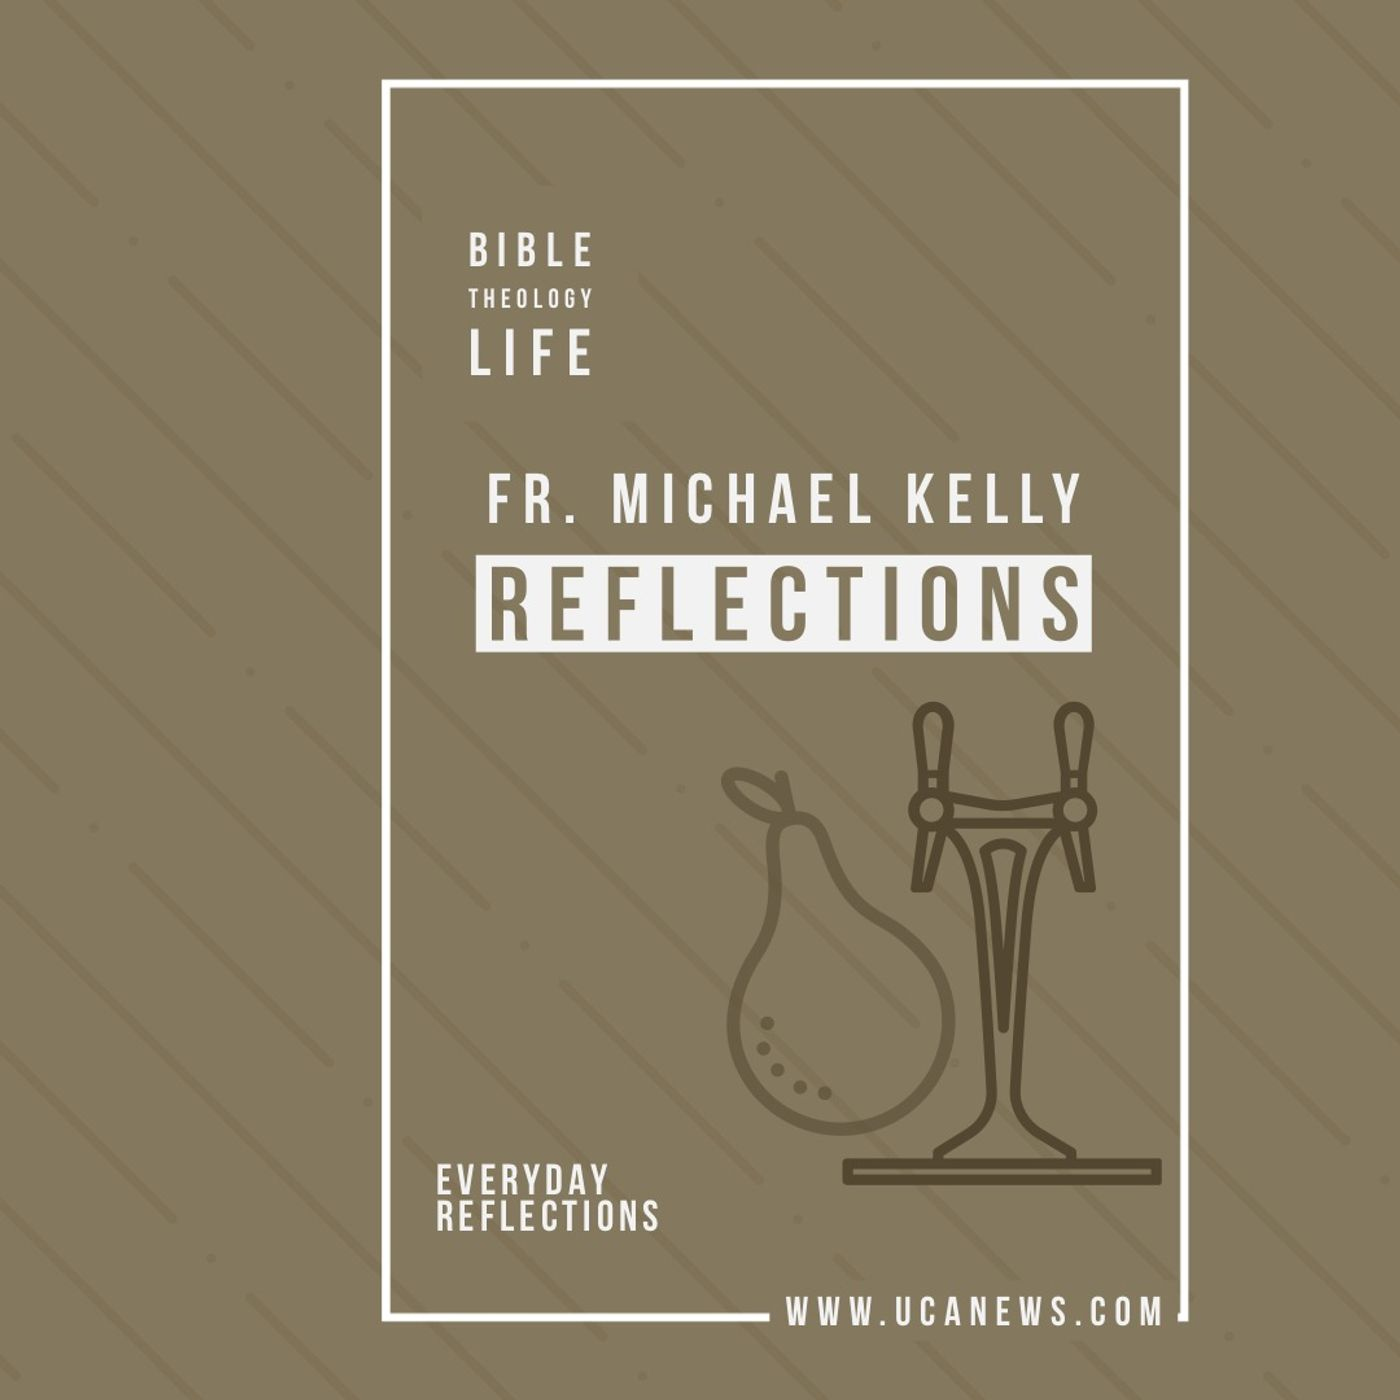 Reflections with Fr. Michael Kelly - Saturday 6 Mar, 2021